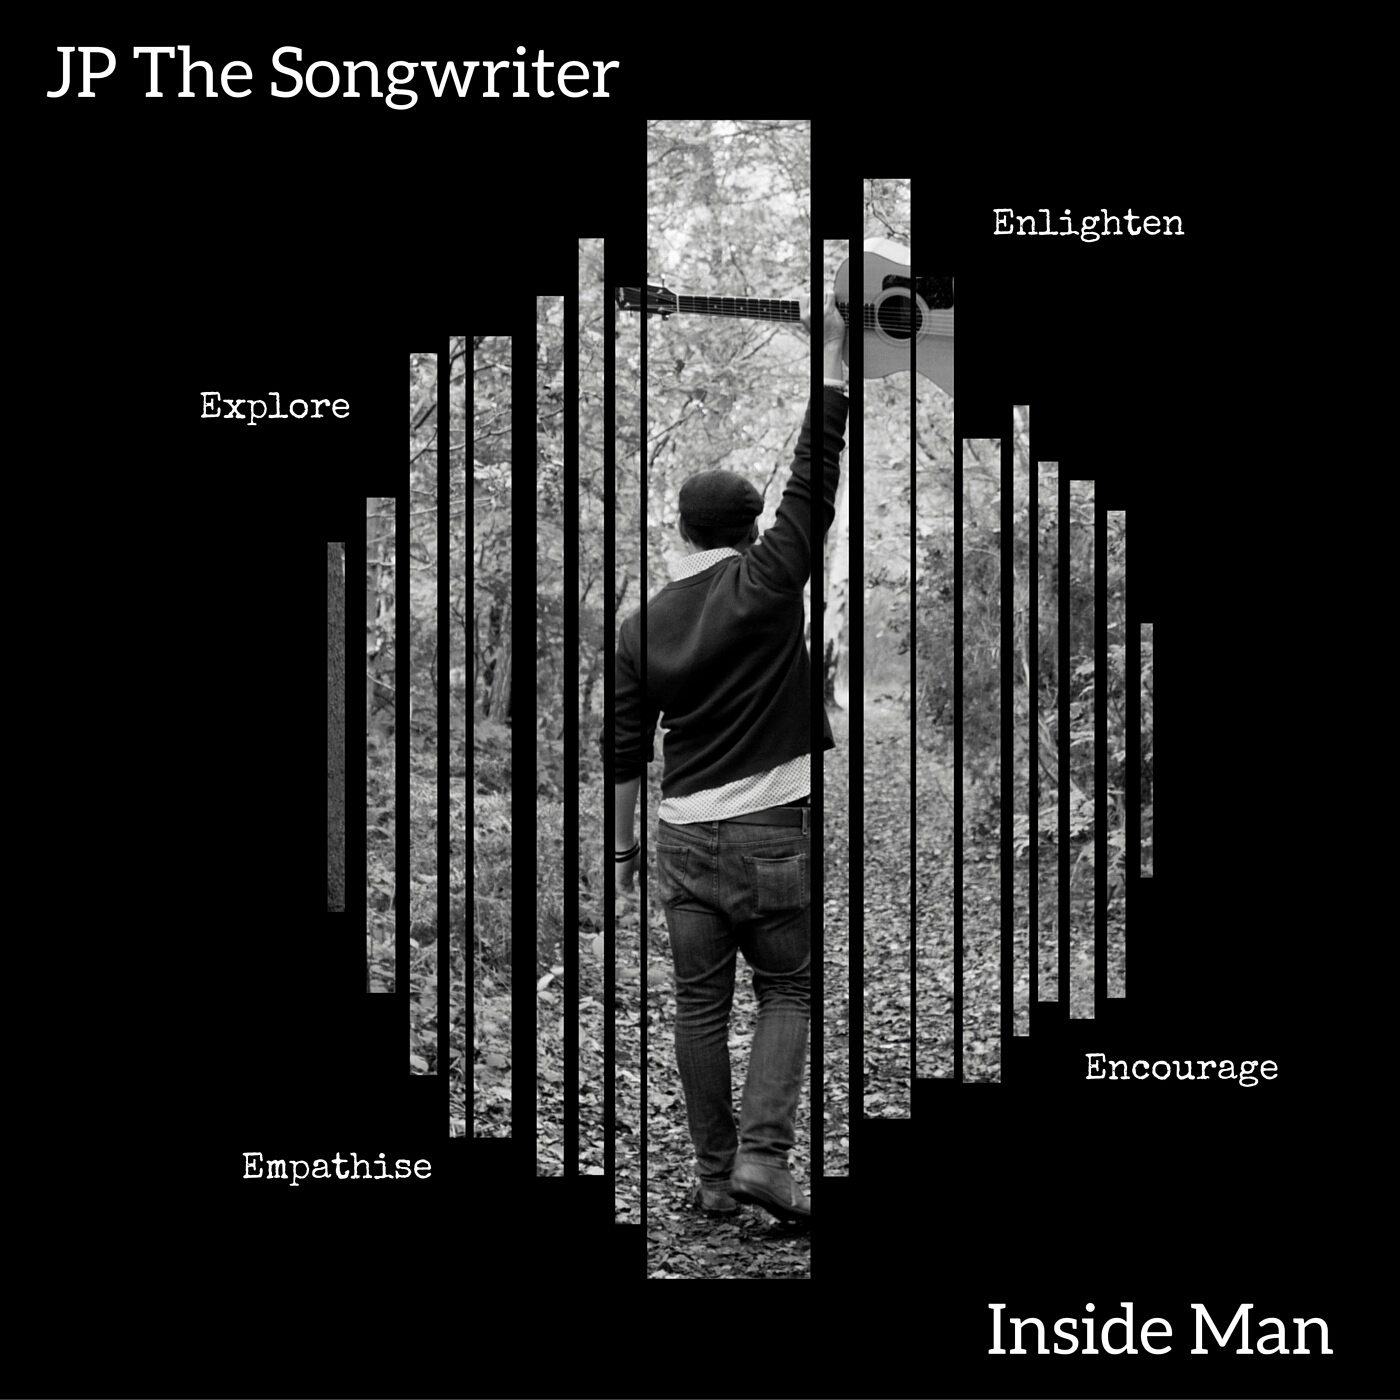 JP The Songwriter.jpg